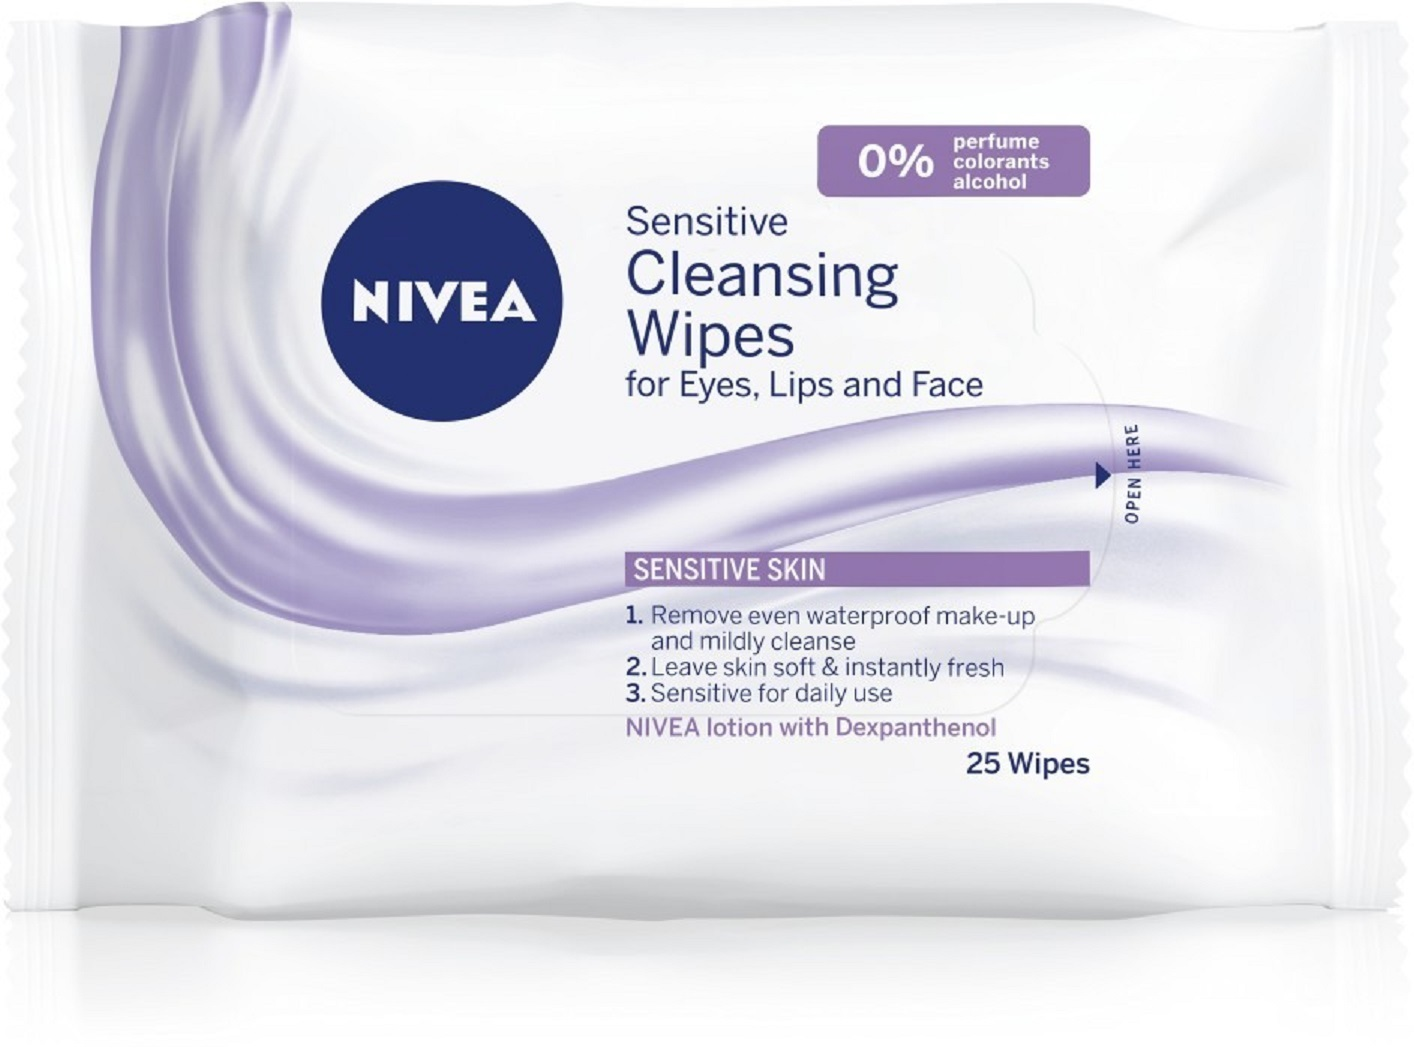 Nivea Sensitive Cleansing Wipes 25 pcs image 3